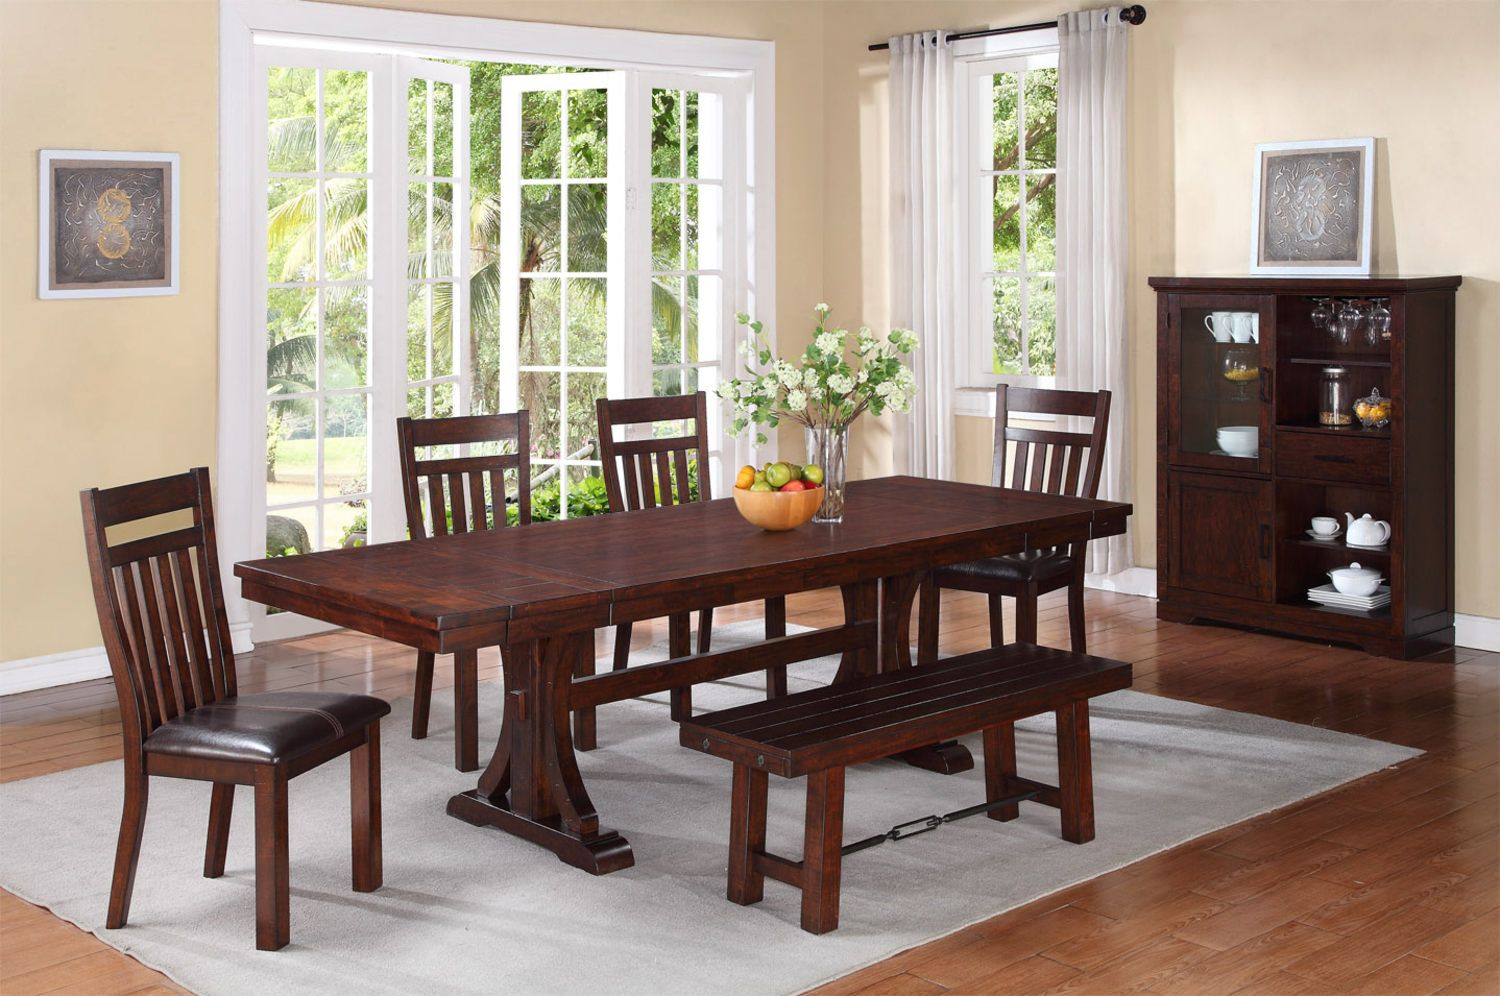 Rio Grande Trestle Table And 4 Side Chairs